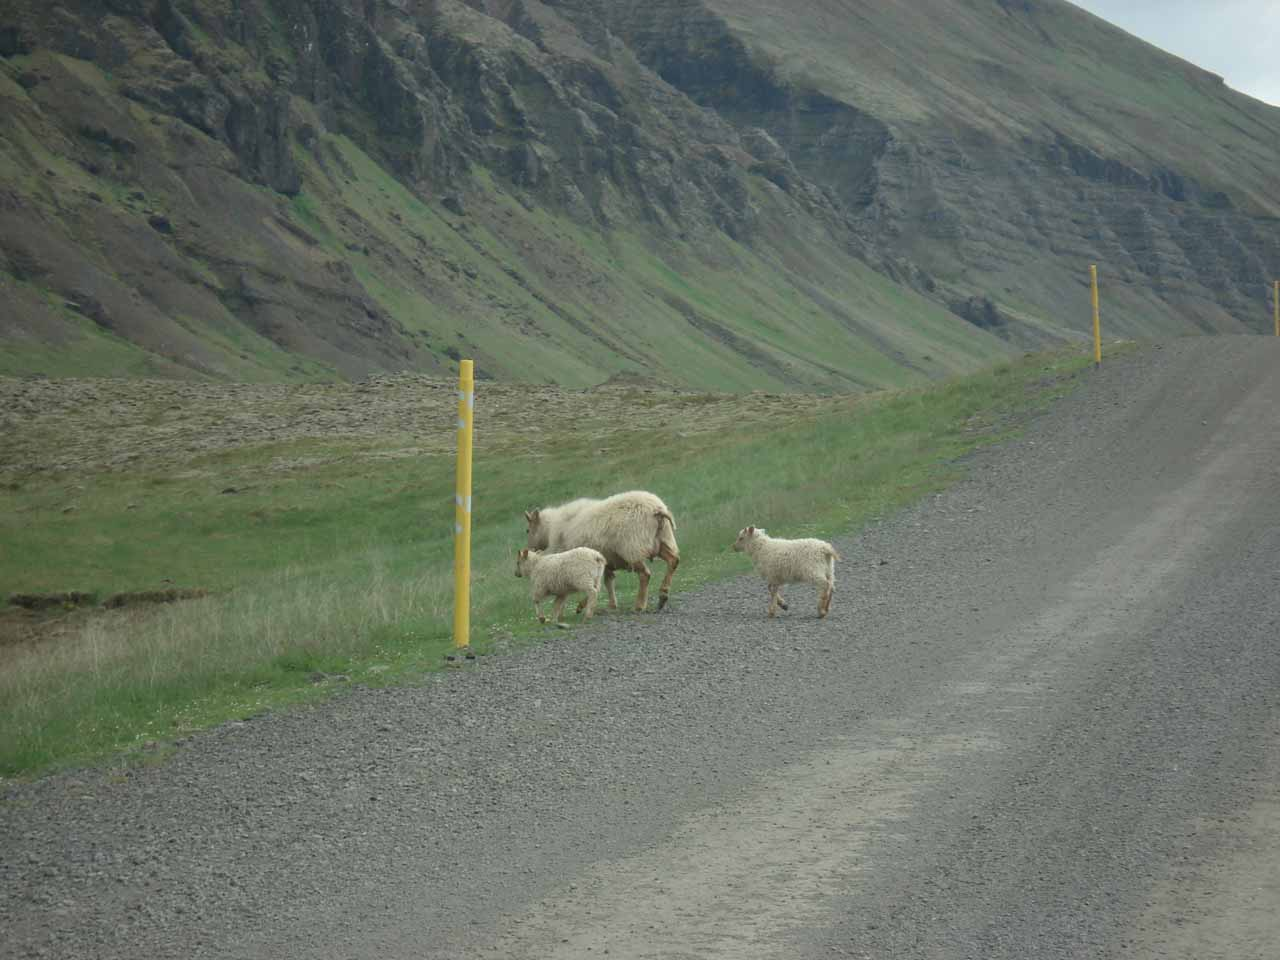 While driving the unpaved route 48, we shared the road with sheep